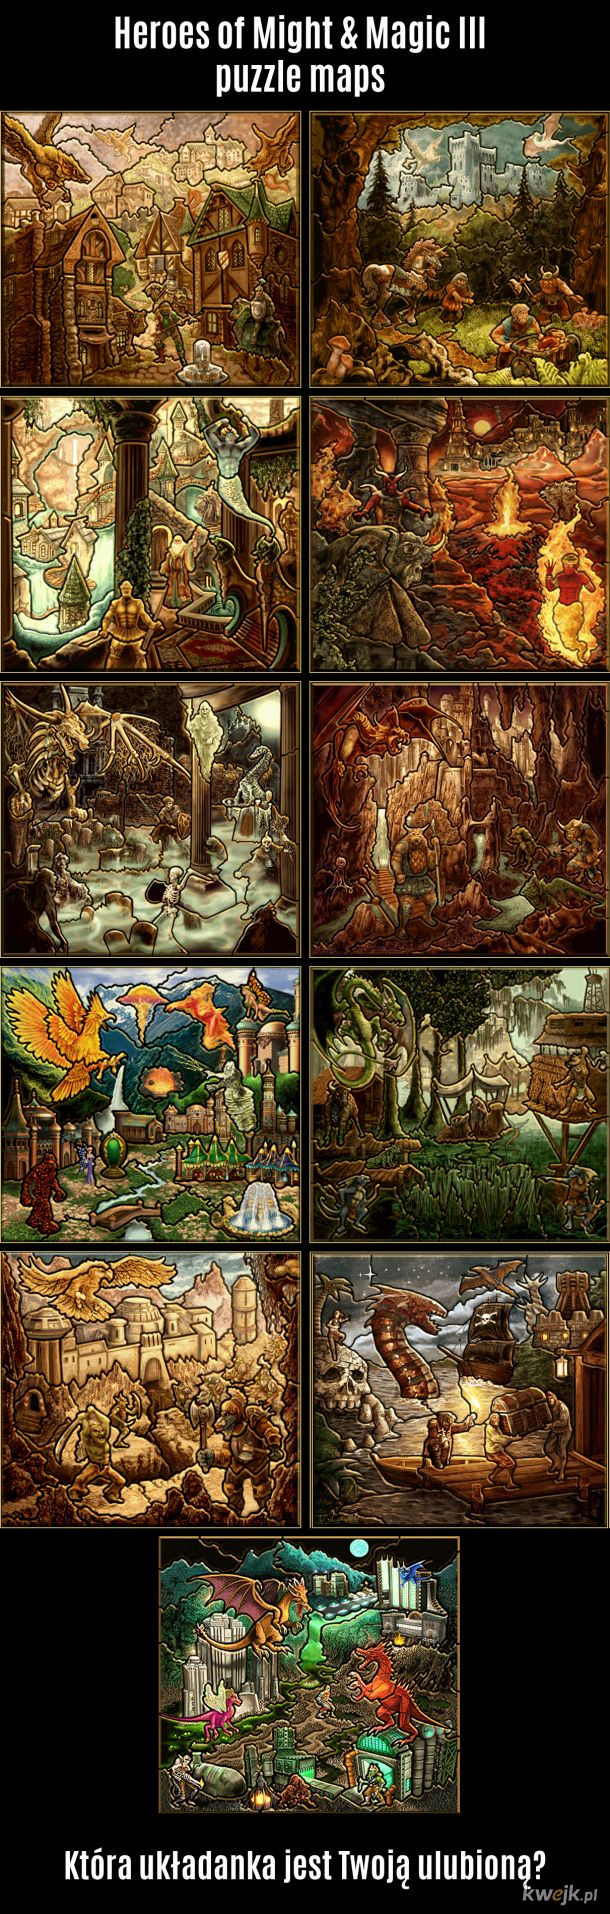 Heroes of Might & Magic III puzzle maps